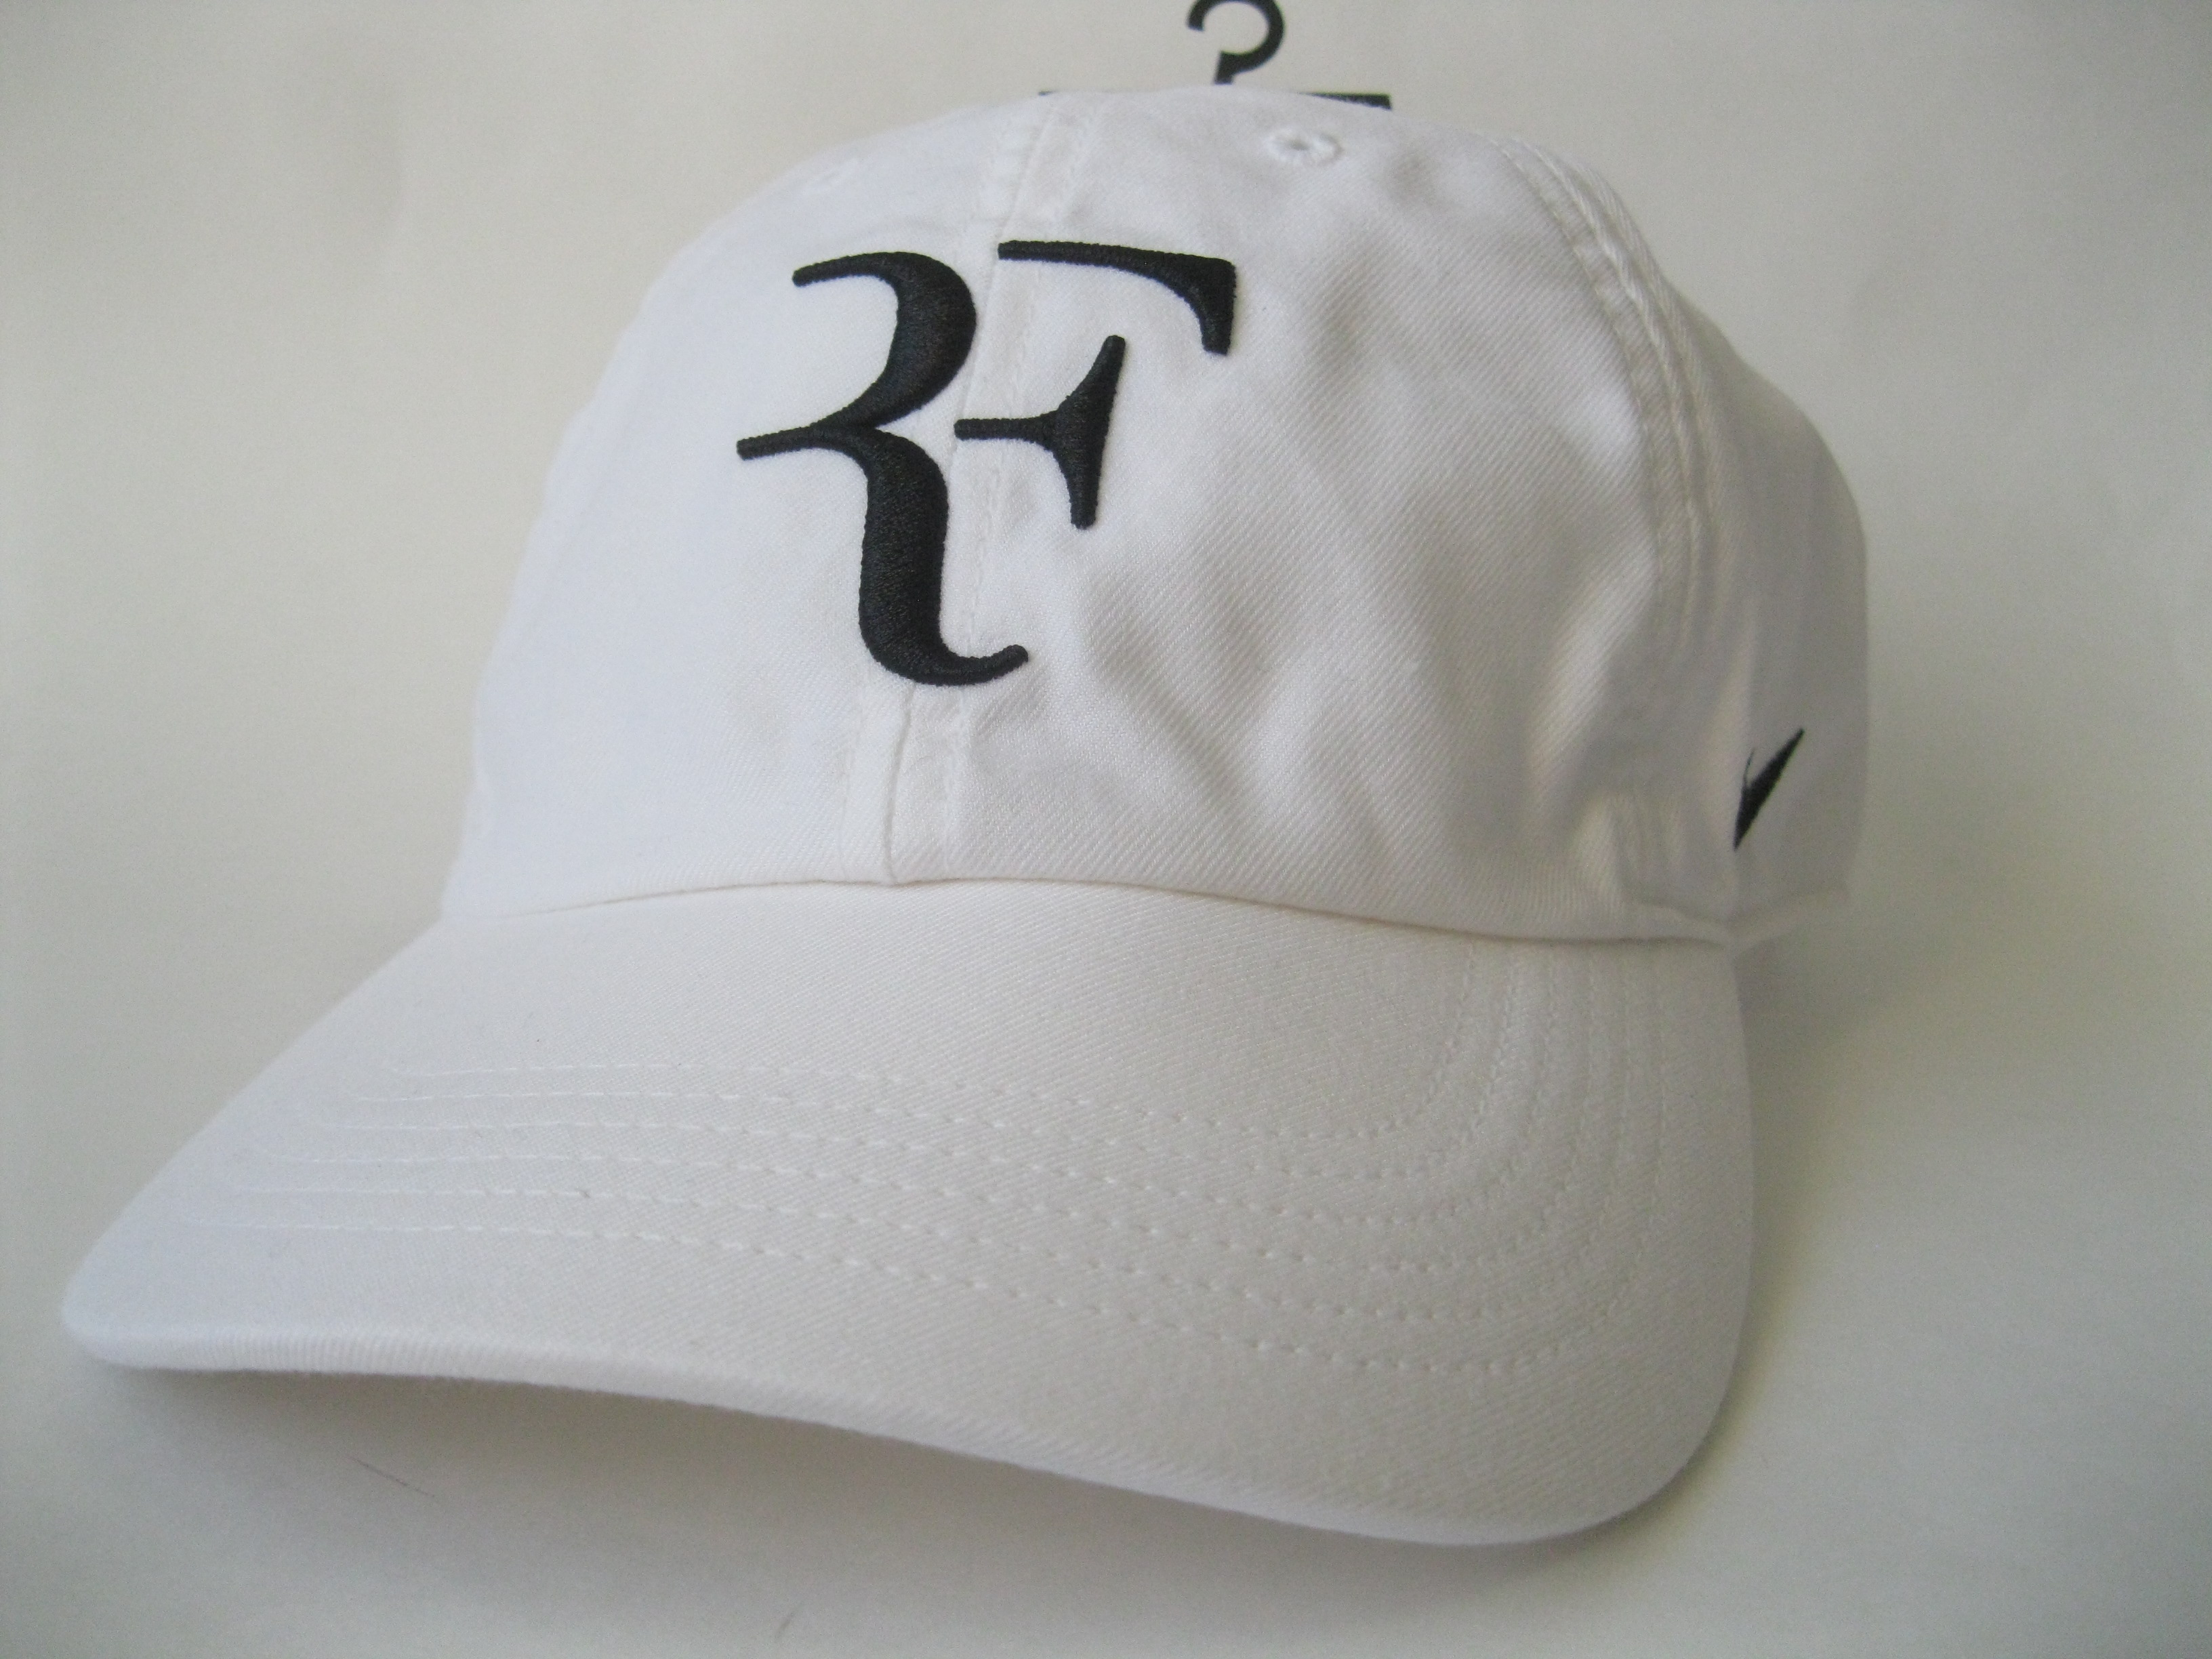 31bb28b021bd4 Nike Nike Aerobill Rodger Federer Hat Size one size - Hats for Sale -  Grailed